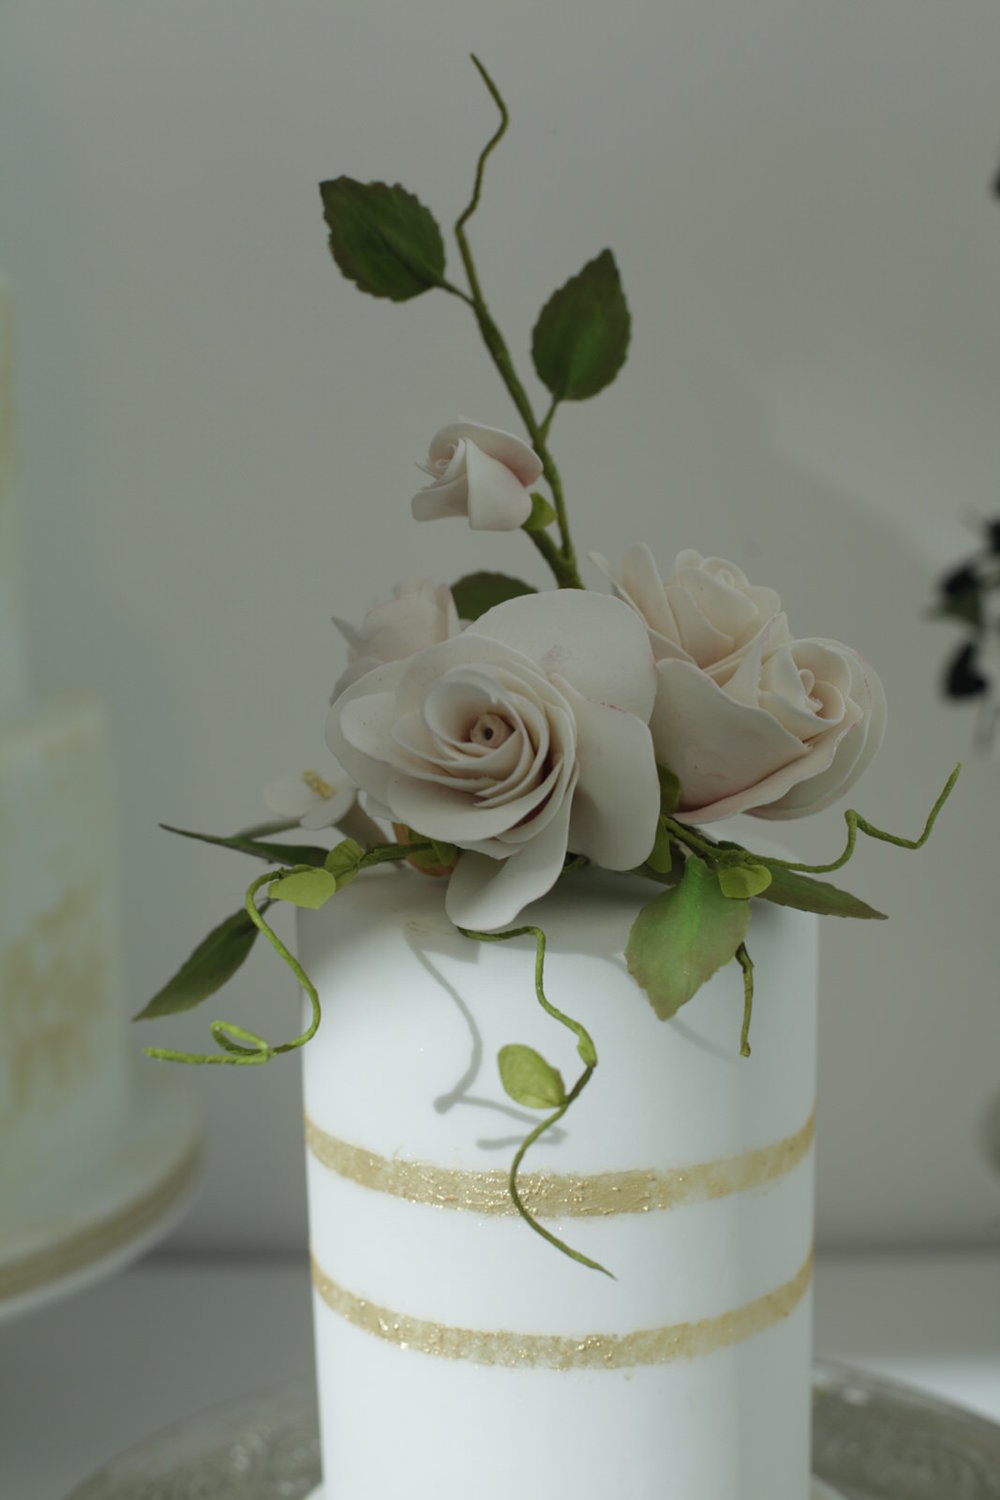 Peach rose miniature wedding cake